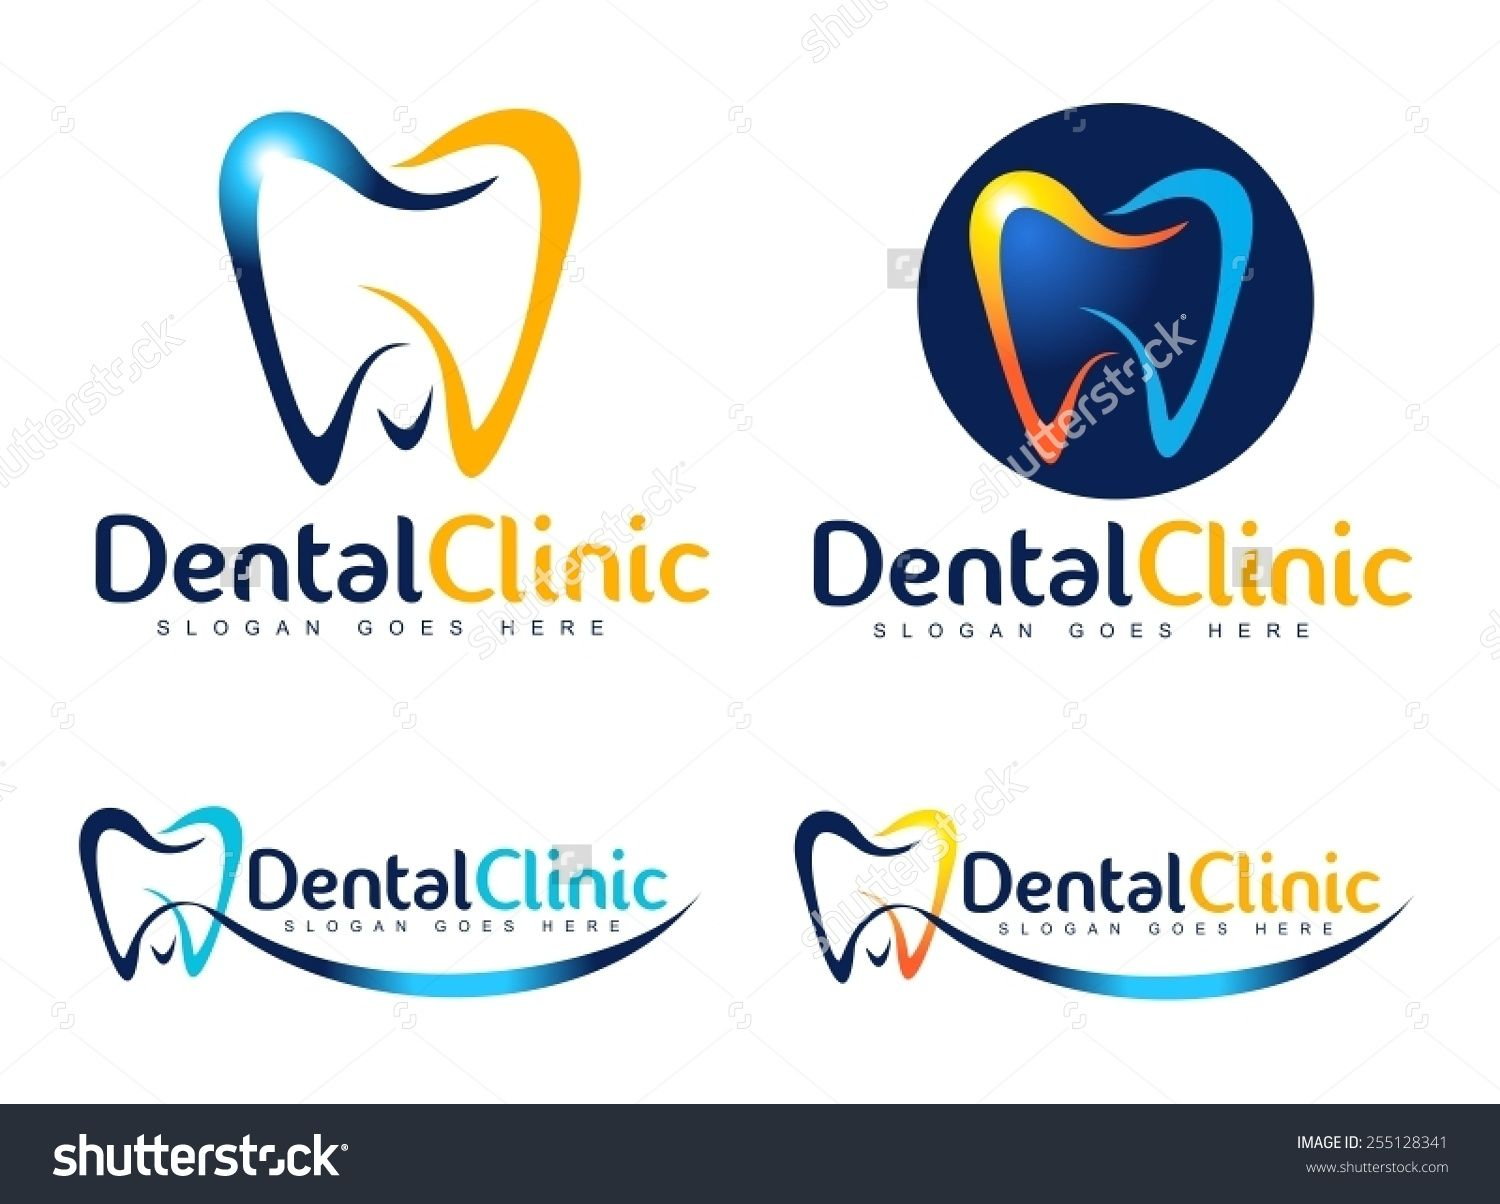 Dental Stock Photos, Images, & Pictures | Shutterstock | FaciesID ...